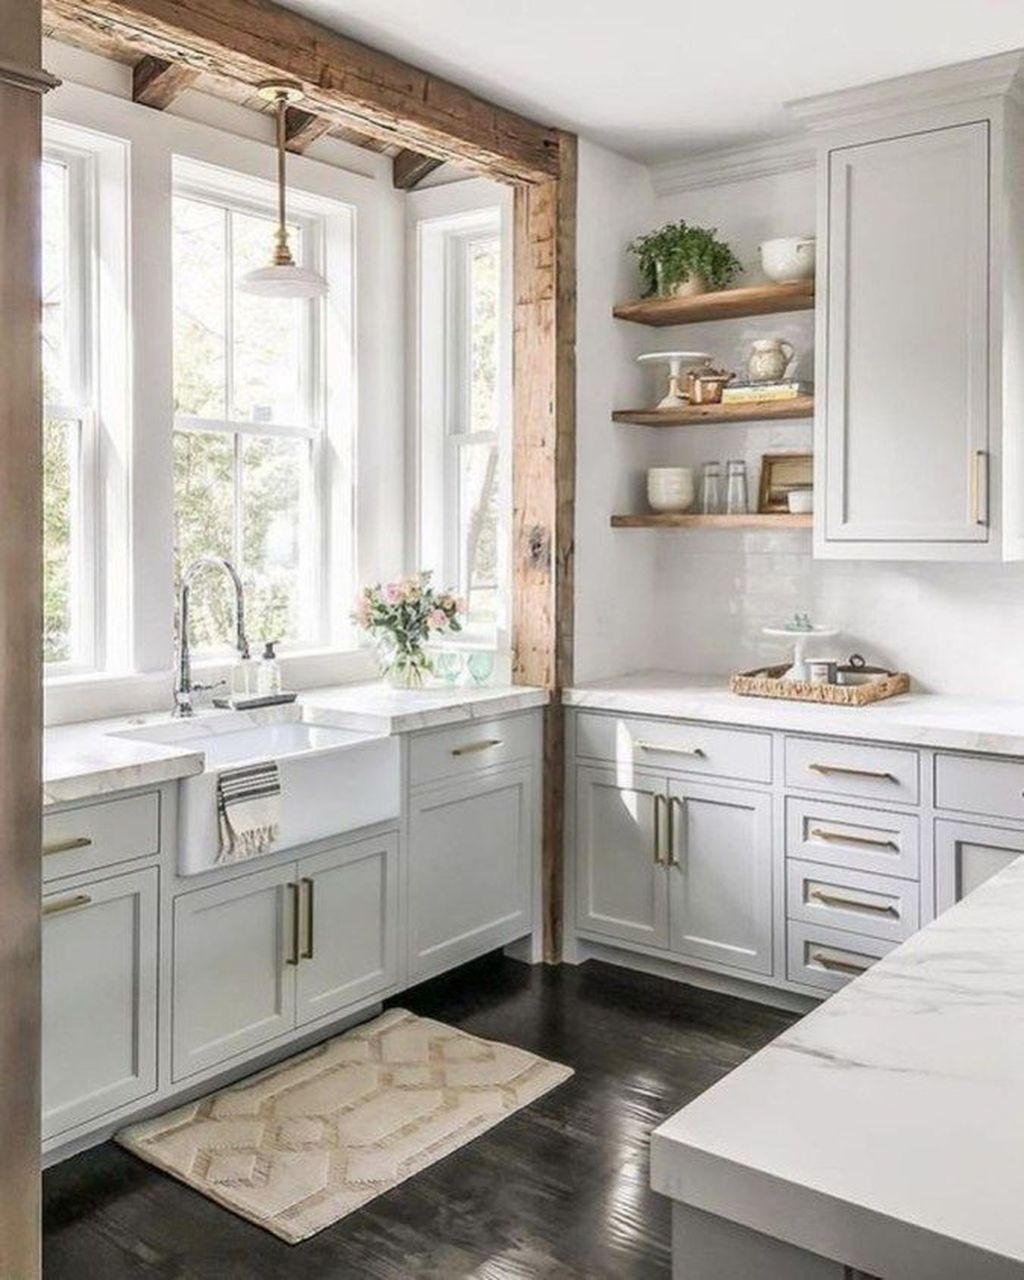 Awesome Small Kitchen Remodel Ideas30